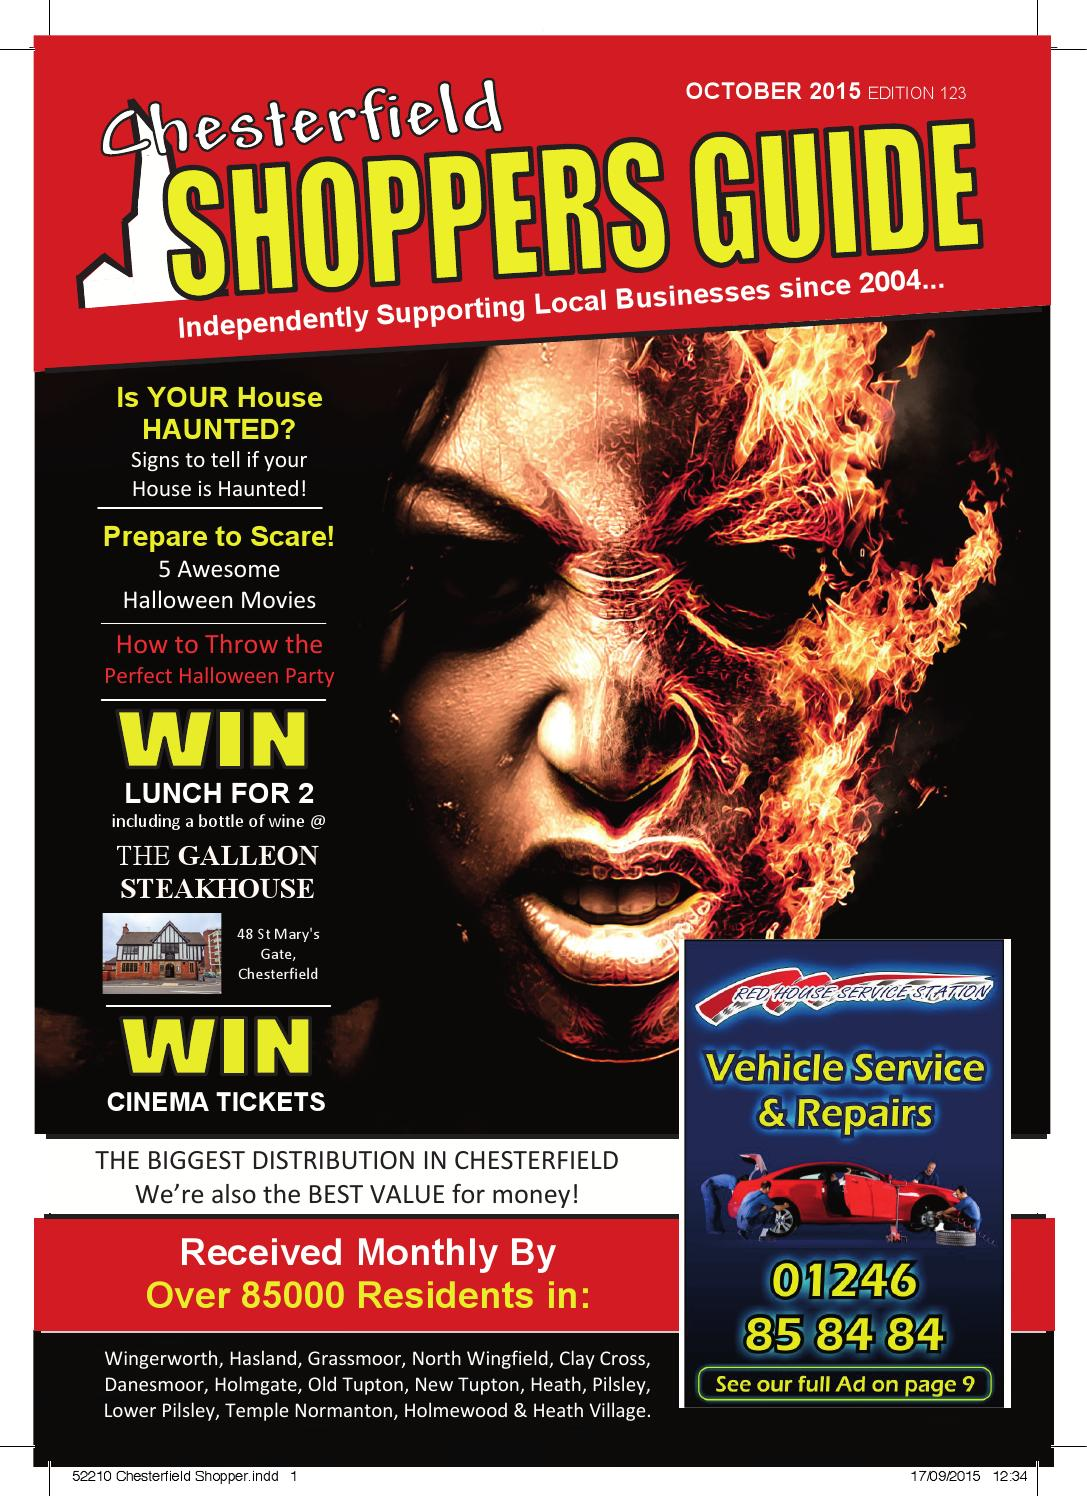 a39f432e3c0fb Chesterfield Shoppers Guide October Edition 2015 by Shoppers Guide - issuu